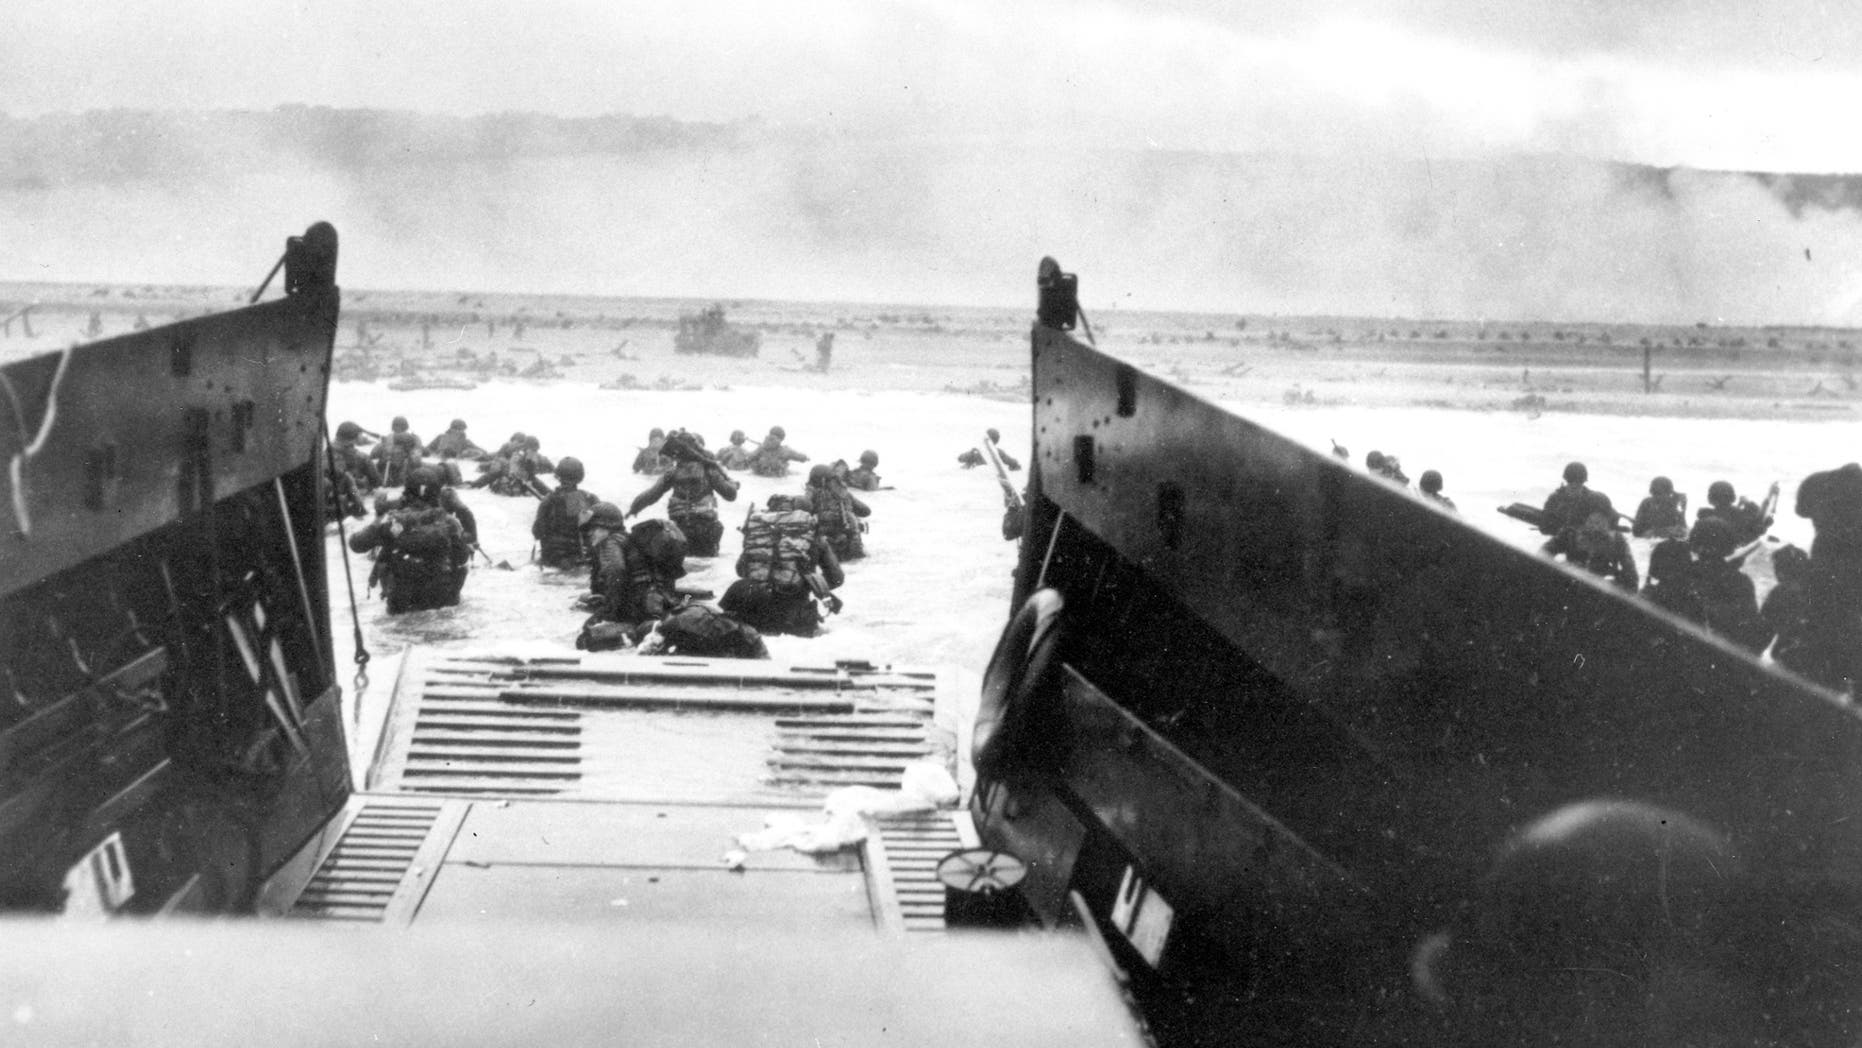 FILE - In this June 8, 1944, file photo, under heavy German machine gun fire, American infantrymen wade ashore off the ramp of a Coast Guard landing craft during the invasion of the French coast of Normandy in World War II. June 6, 2019, marks the 75th anniversary of D-Day, the assault that began the liberation of France and Europe from German occupation, leading to the end World War II.